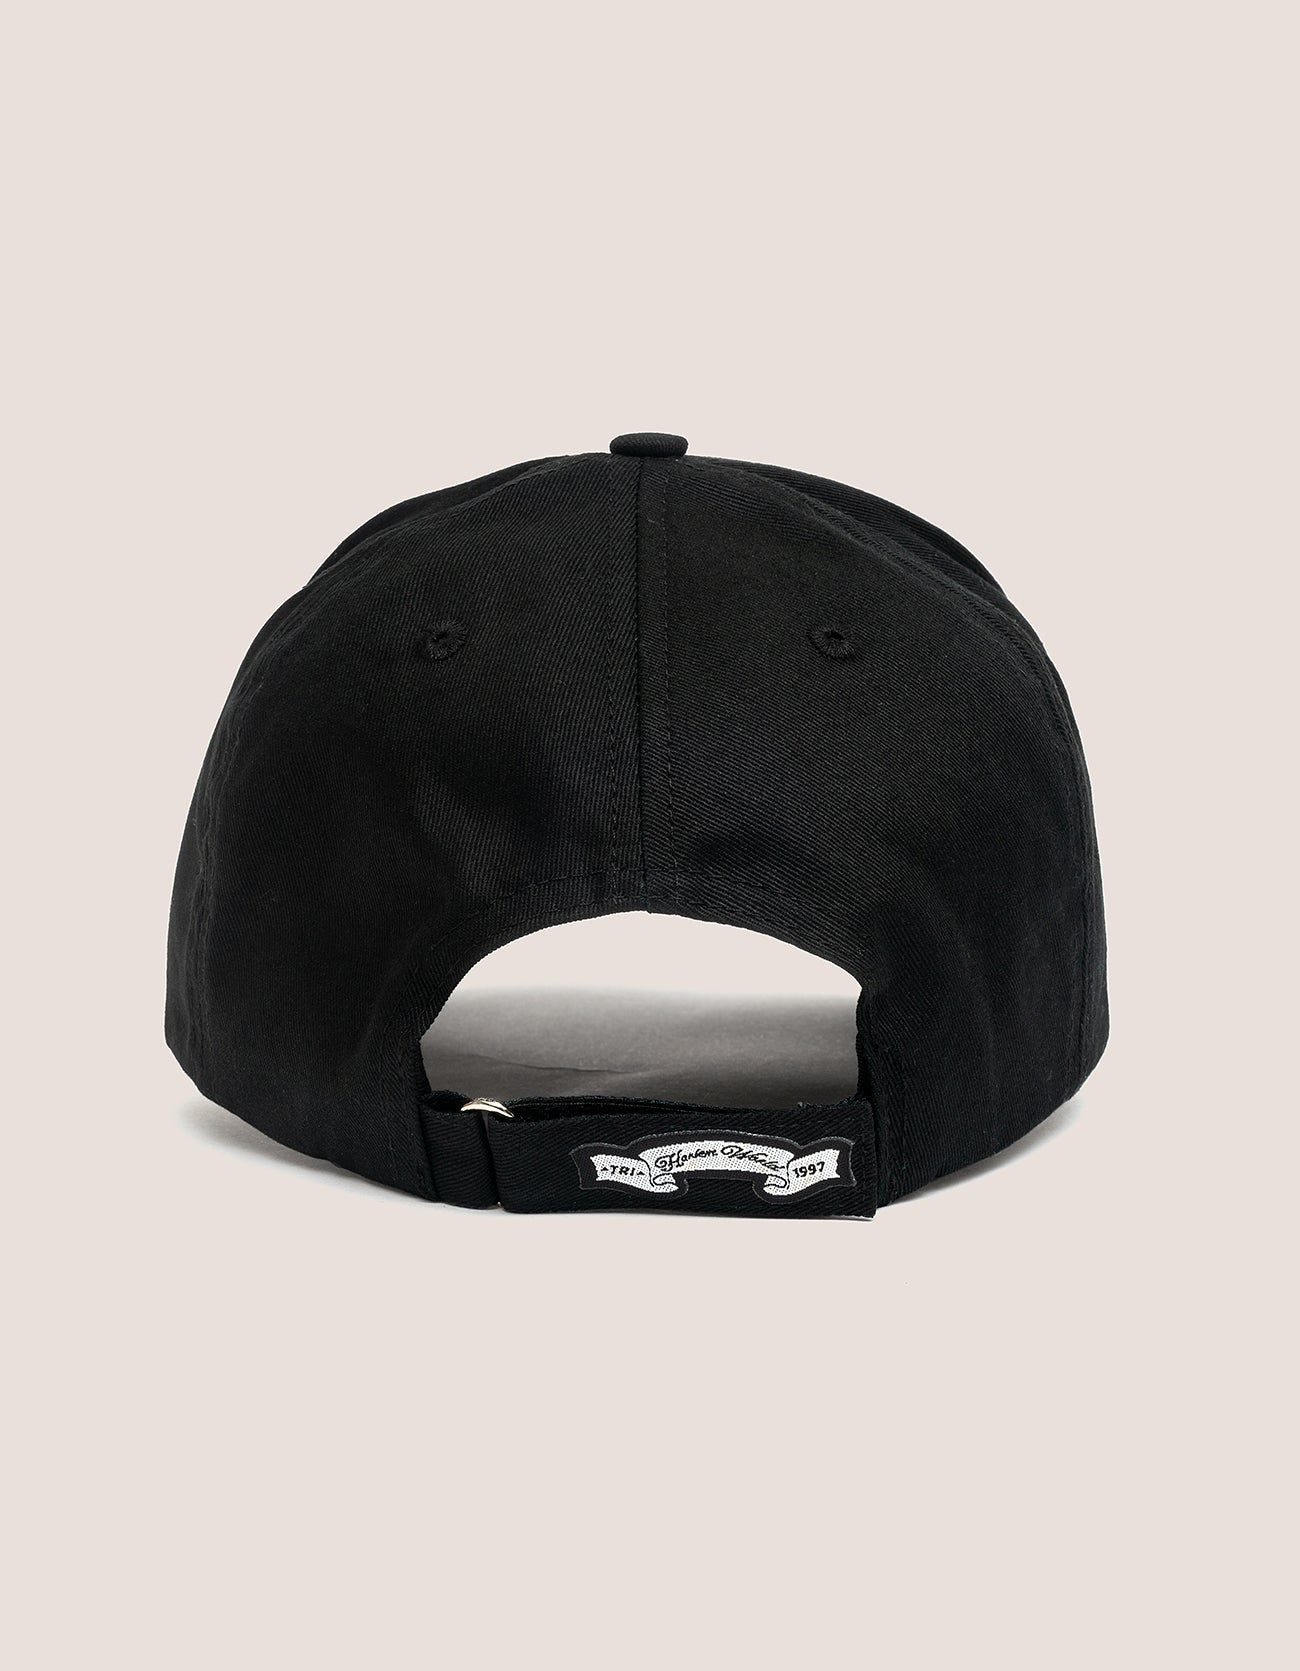 DIPSET COUTURE COTTON ROCKSTAR HAT BLACK